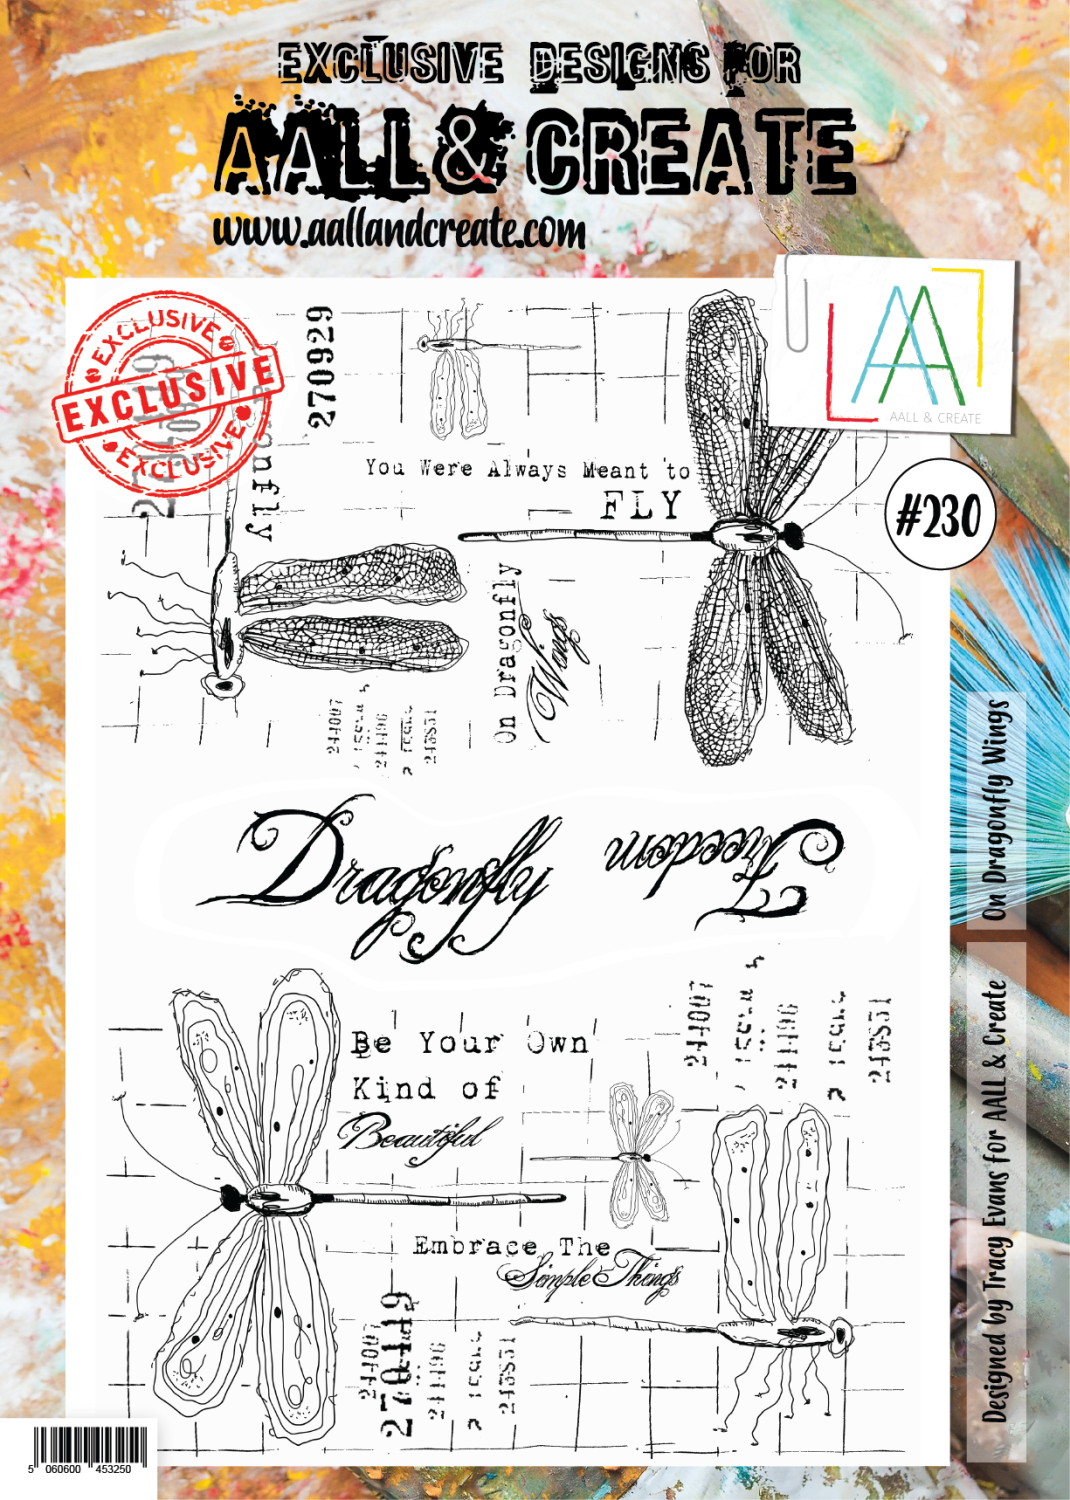 Aall&Create - #230 - A4 - On Dragonfly Wings